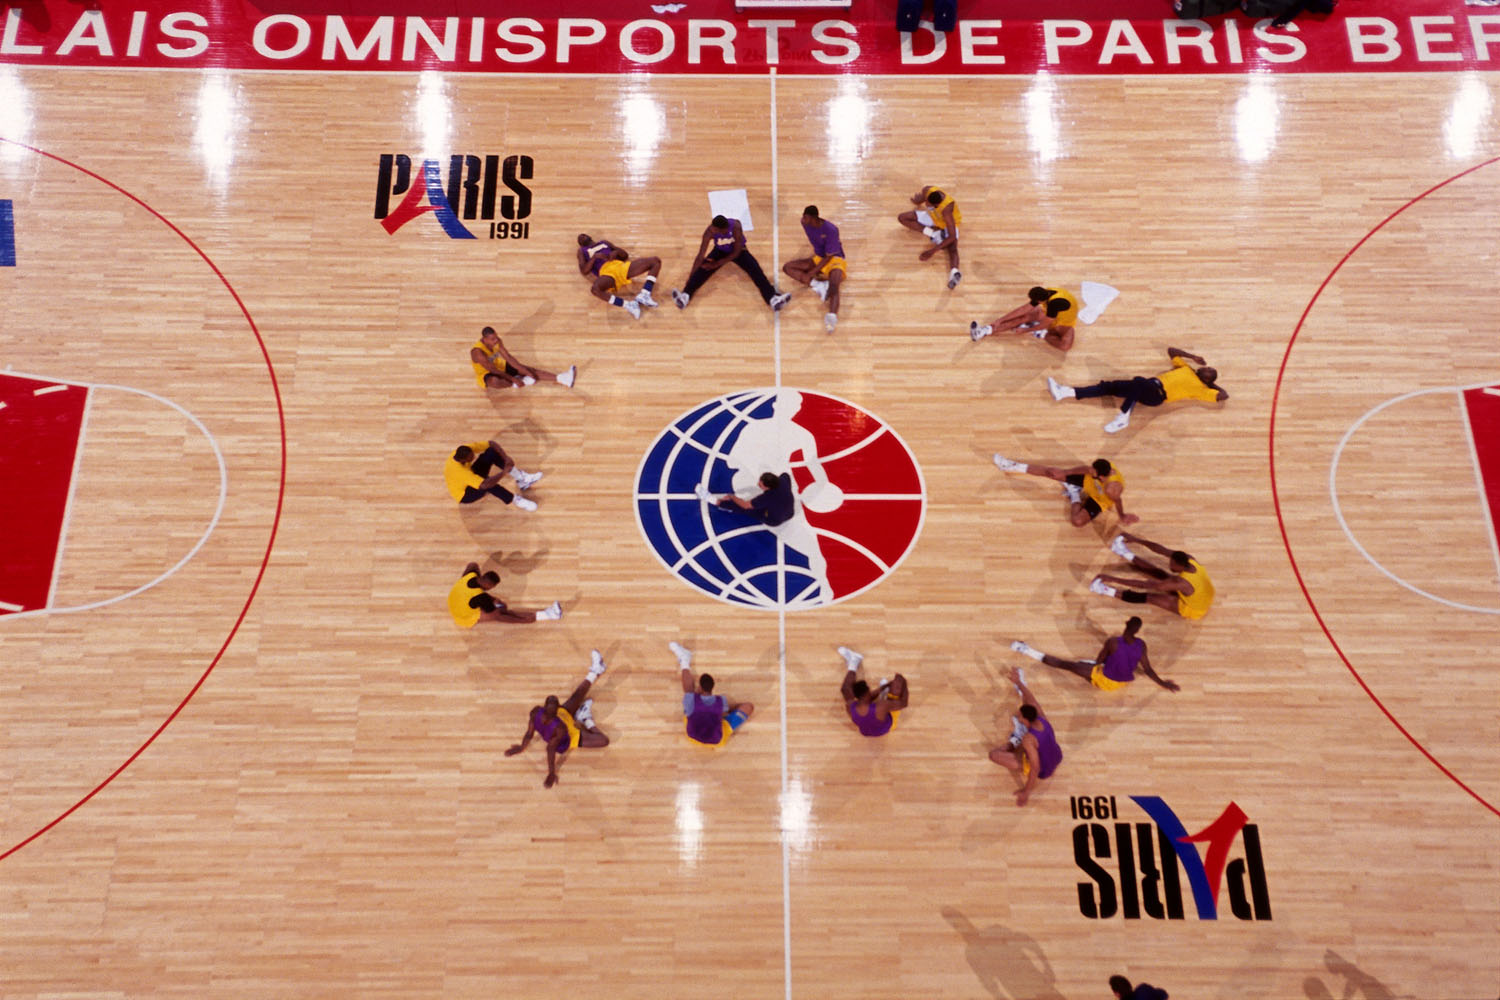 The Los Angeles Lakers practice during the 1991 McDonald's Open on October 14, 1991 at Palais Omnisports de Paris-Bercy in Paris, France.